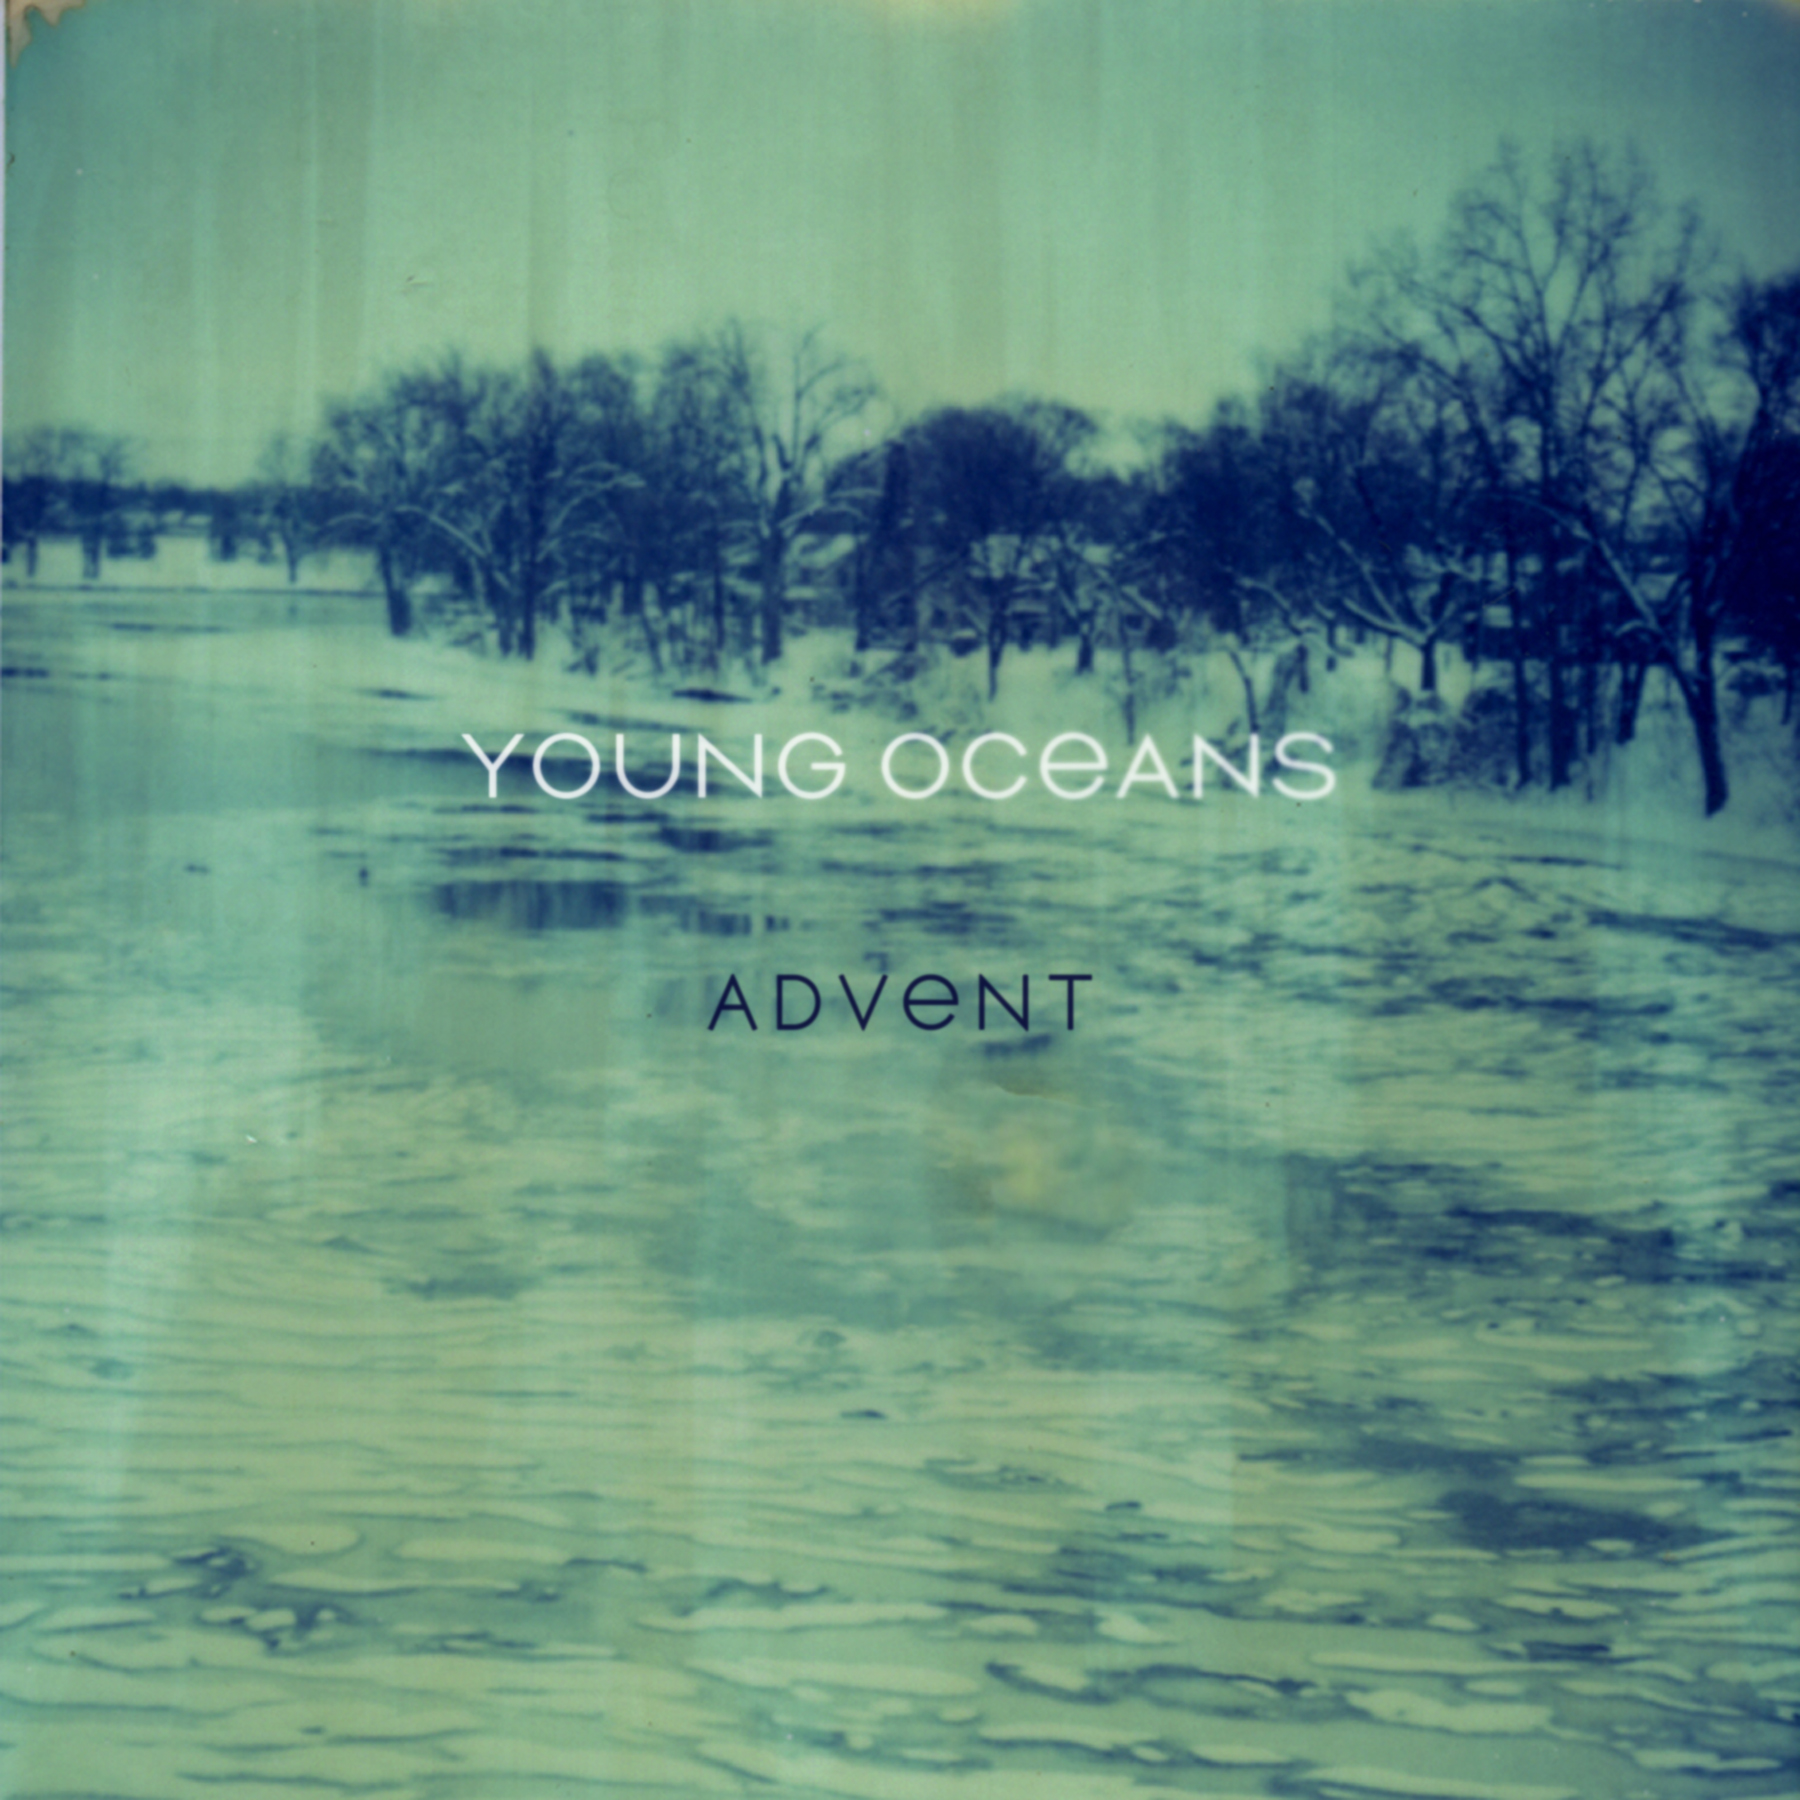 Free Christian Music Download of Young Oceans song All Who Hear